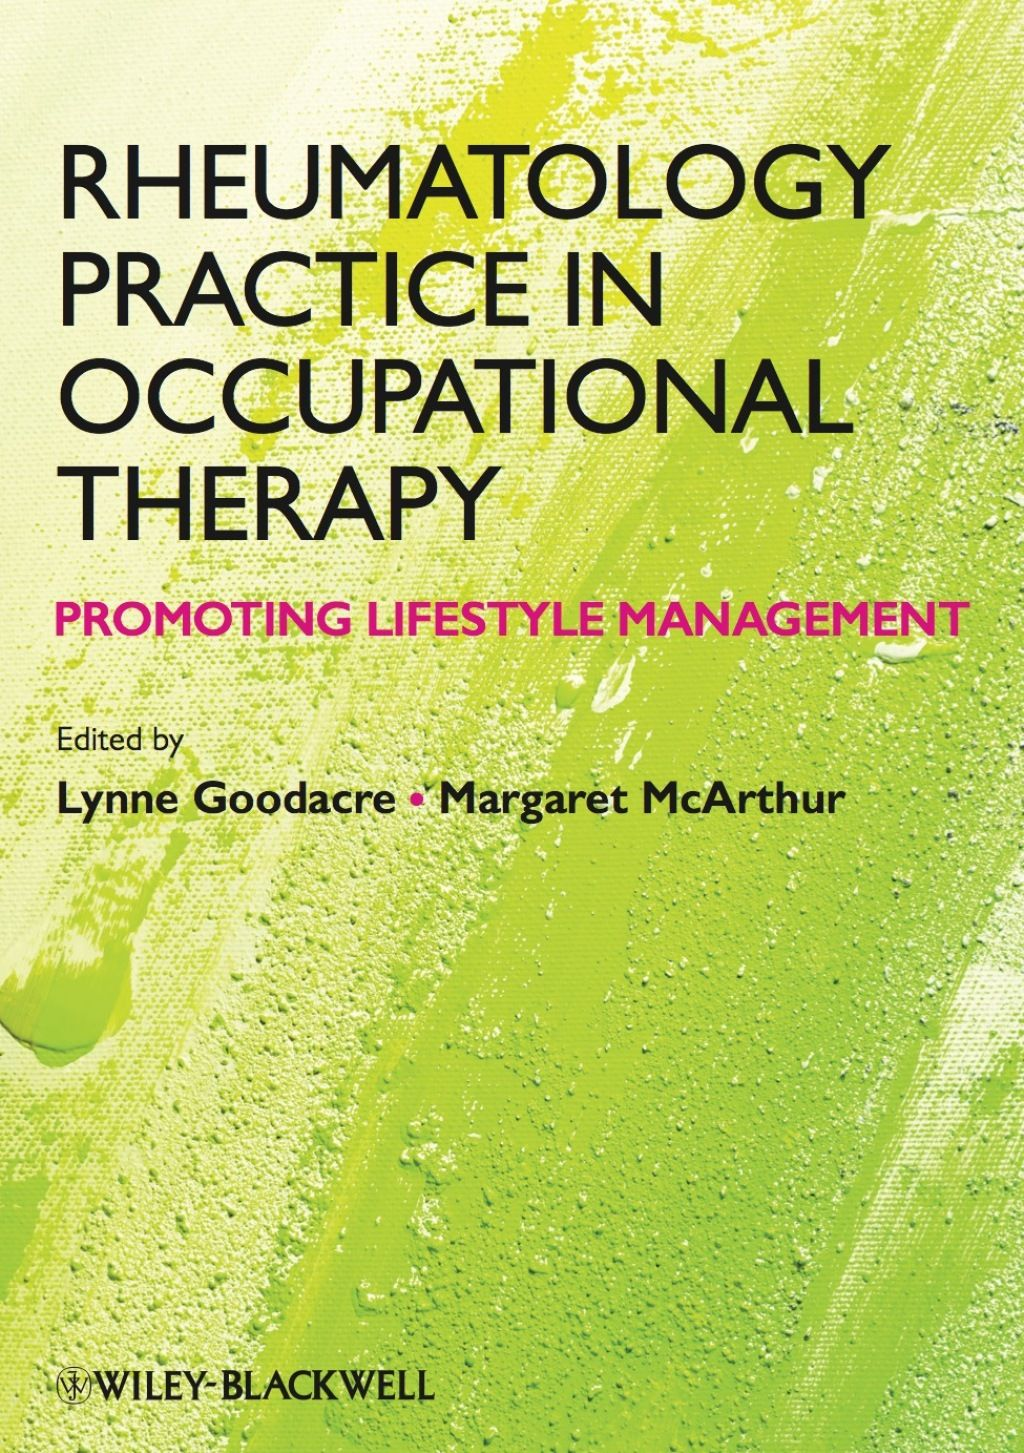 Rheumatology Practice in Occupational Therapy: Promoting